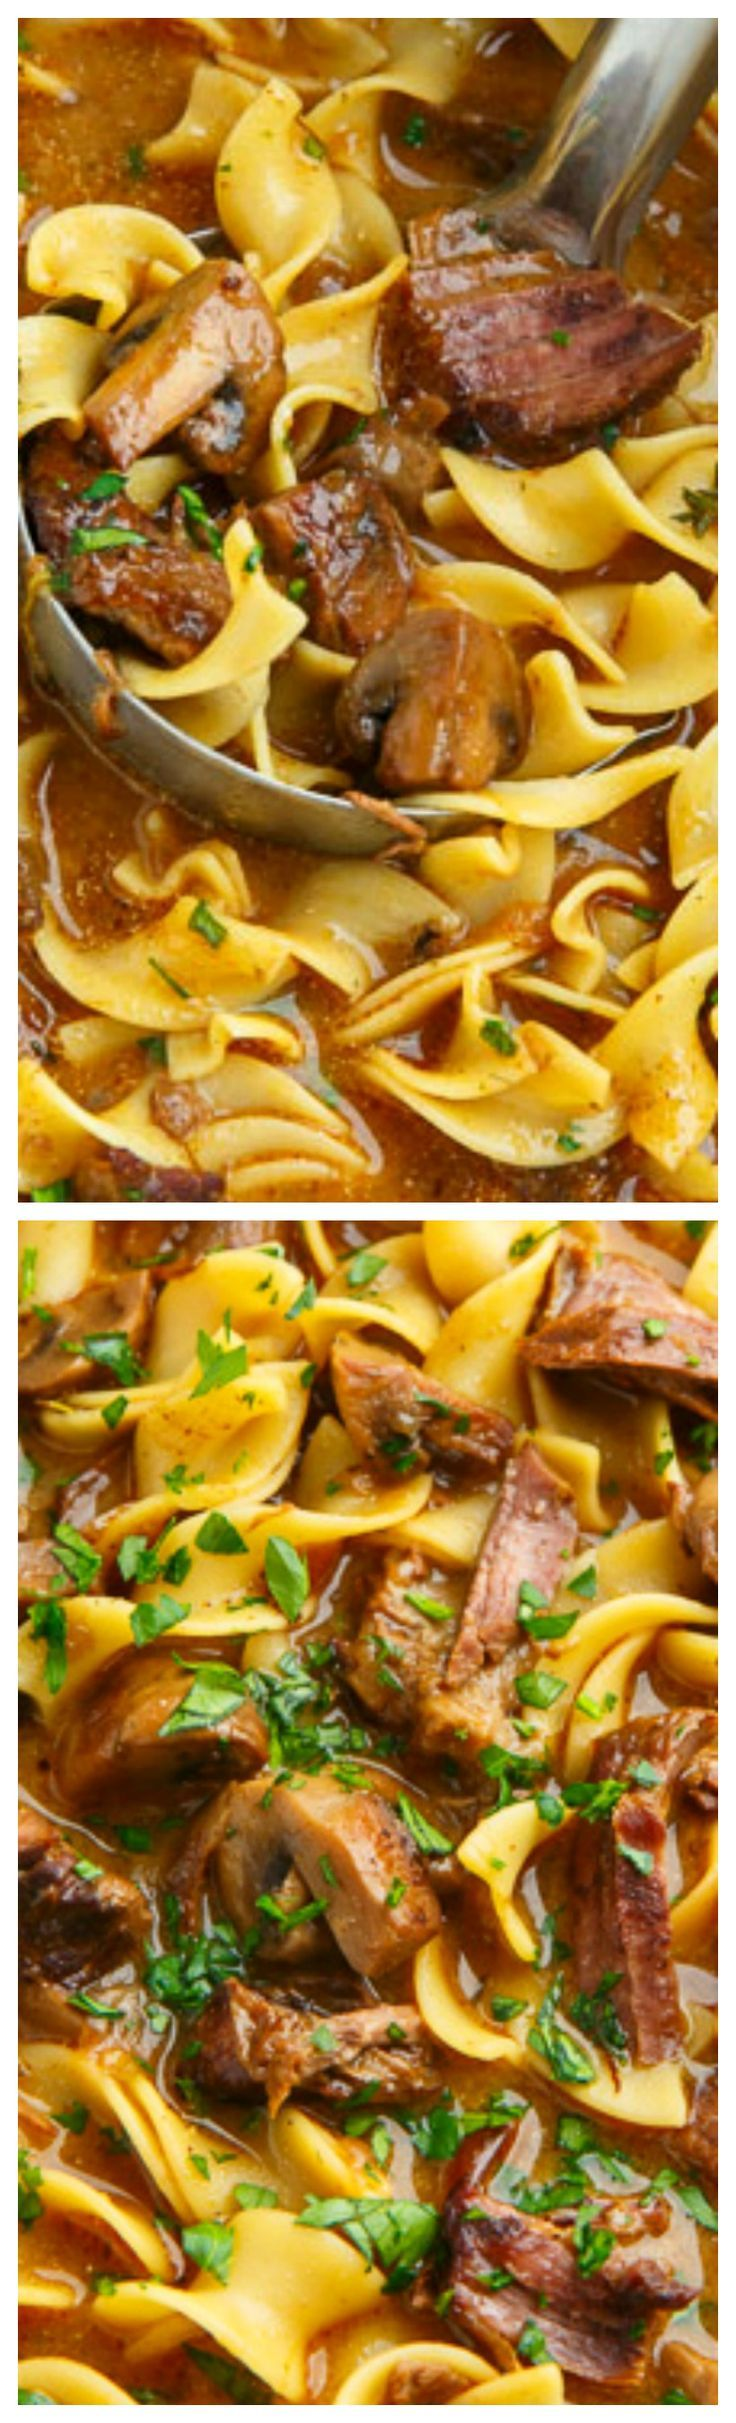 Slow Braised Beef Stroganoff Soup ~ A warm an comforting bowl of slow braised beef stroganoff soup with melt in your mouth beef and egg noodles in a paprika and sour cream broth!